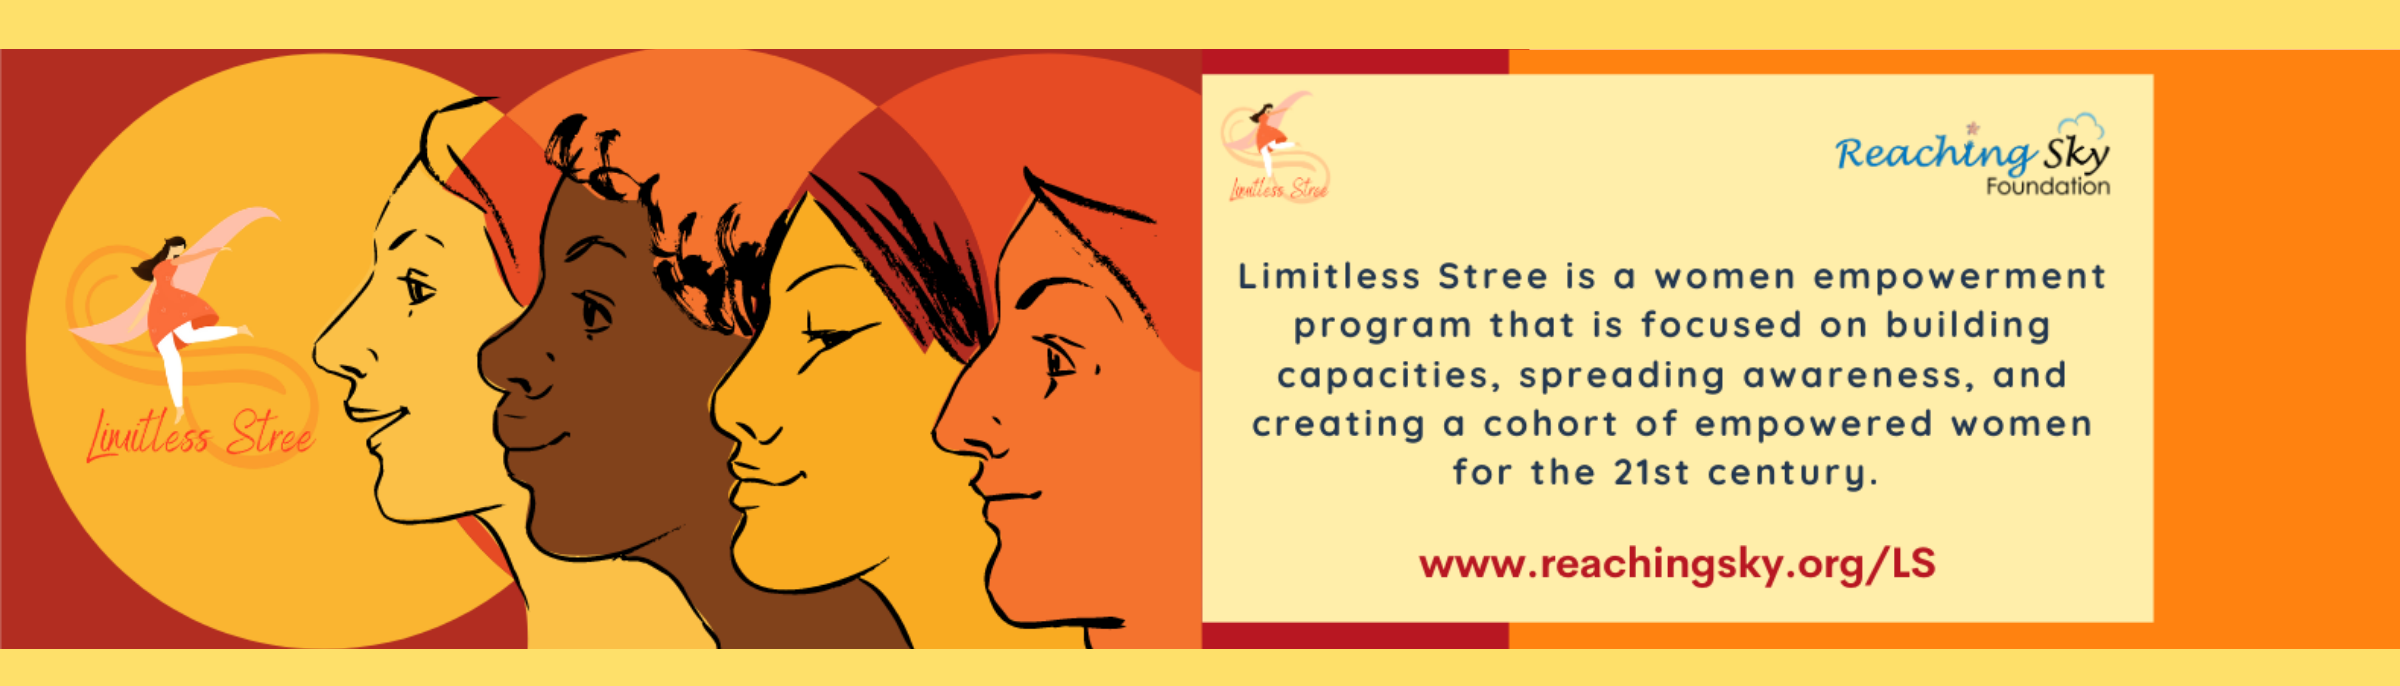 Limitless Stree Women Empowerment Program